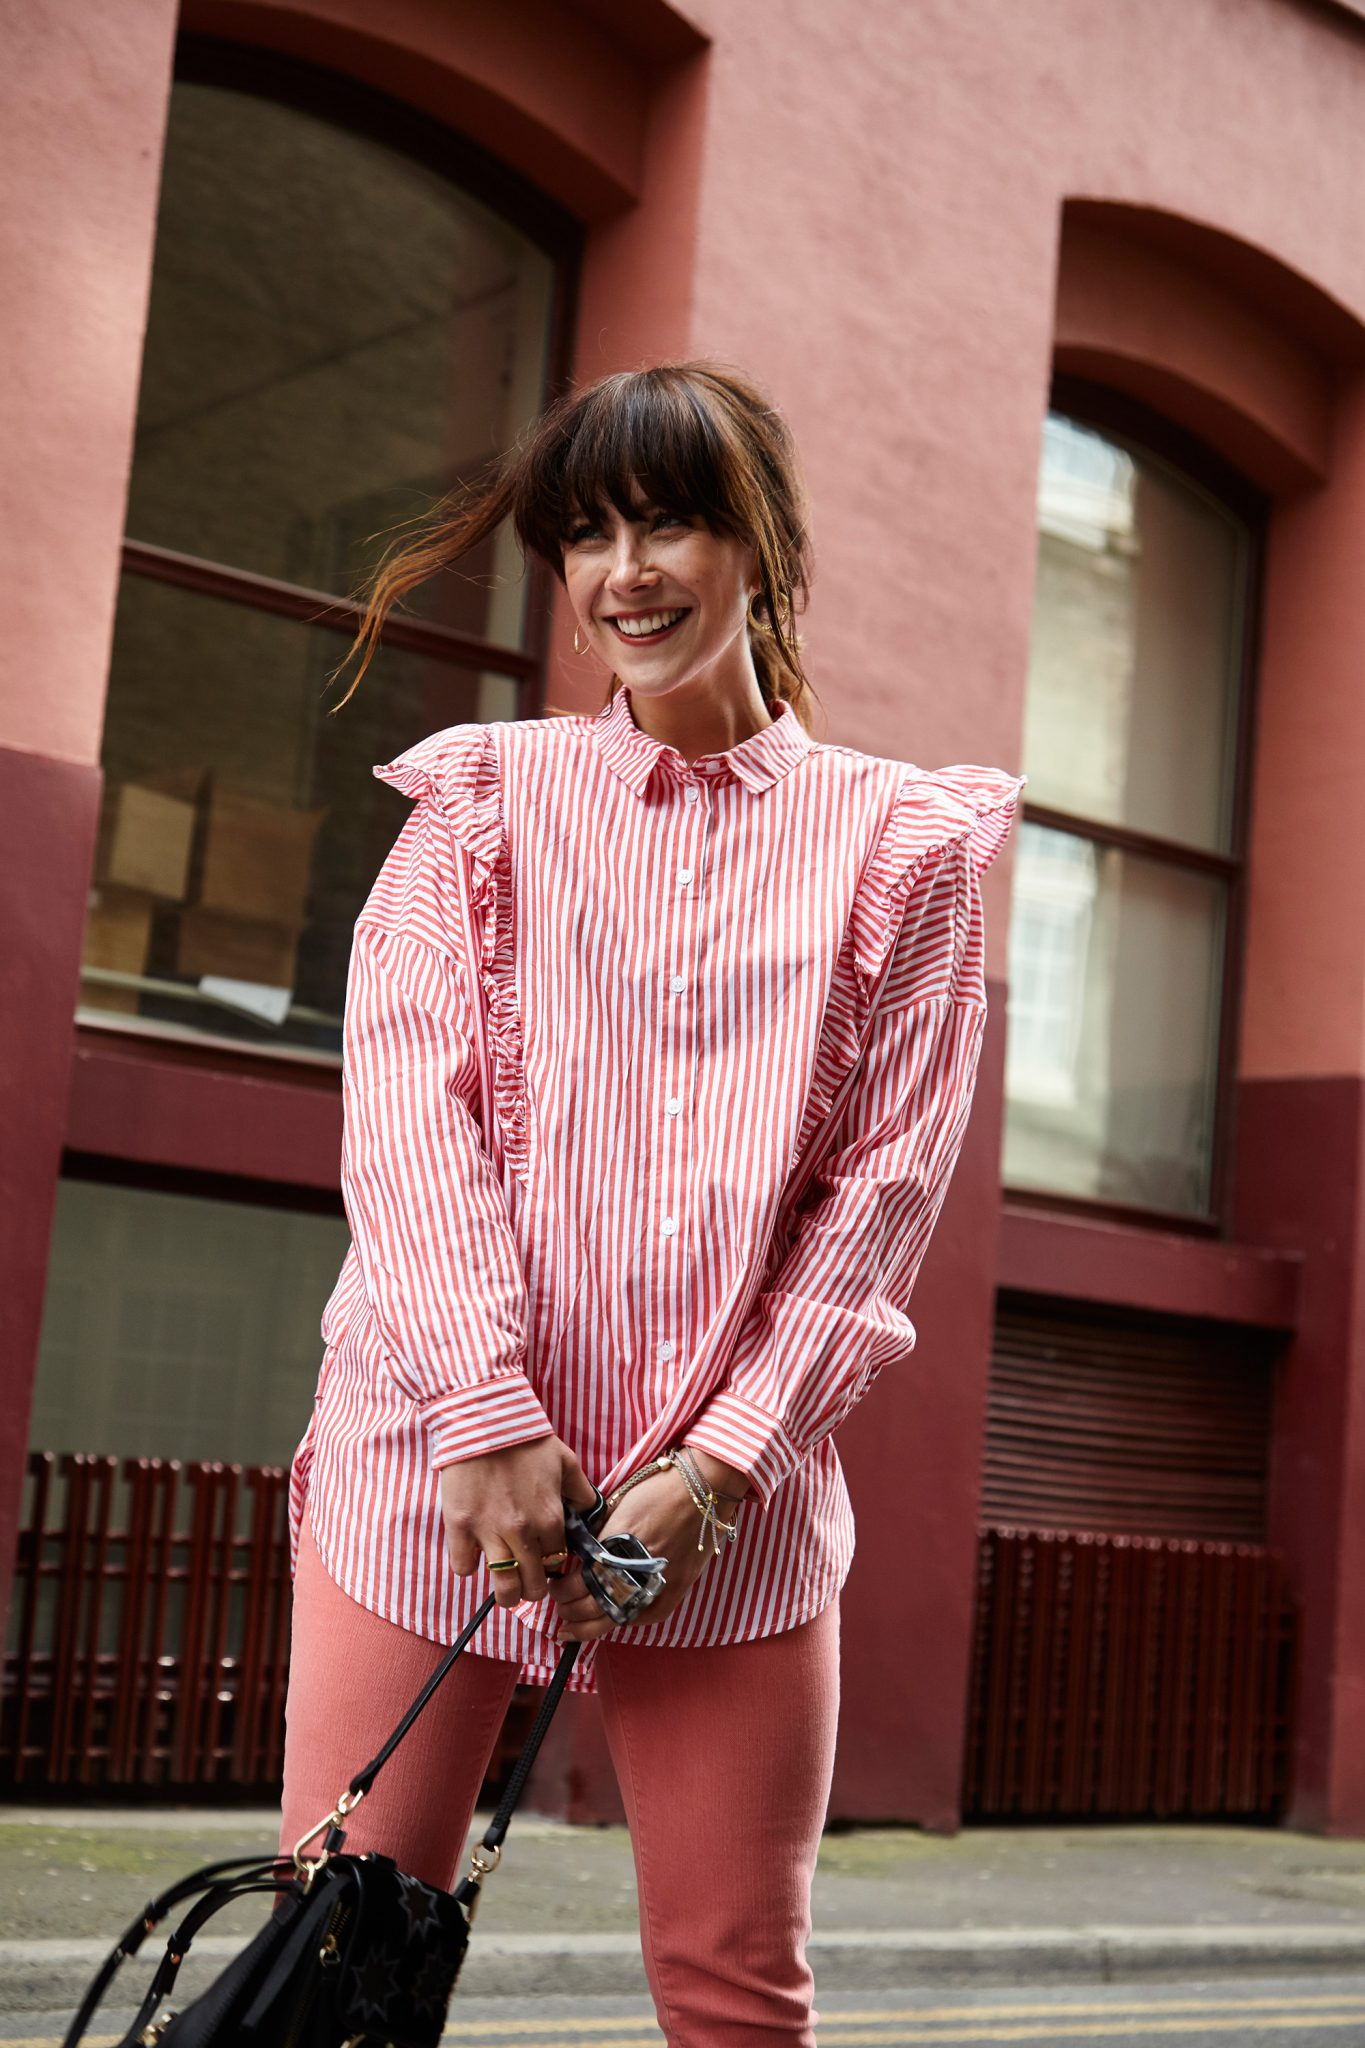 MEGAN ELLABY HOW TO WEAR A POLO SHIRT